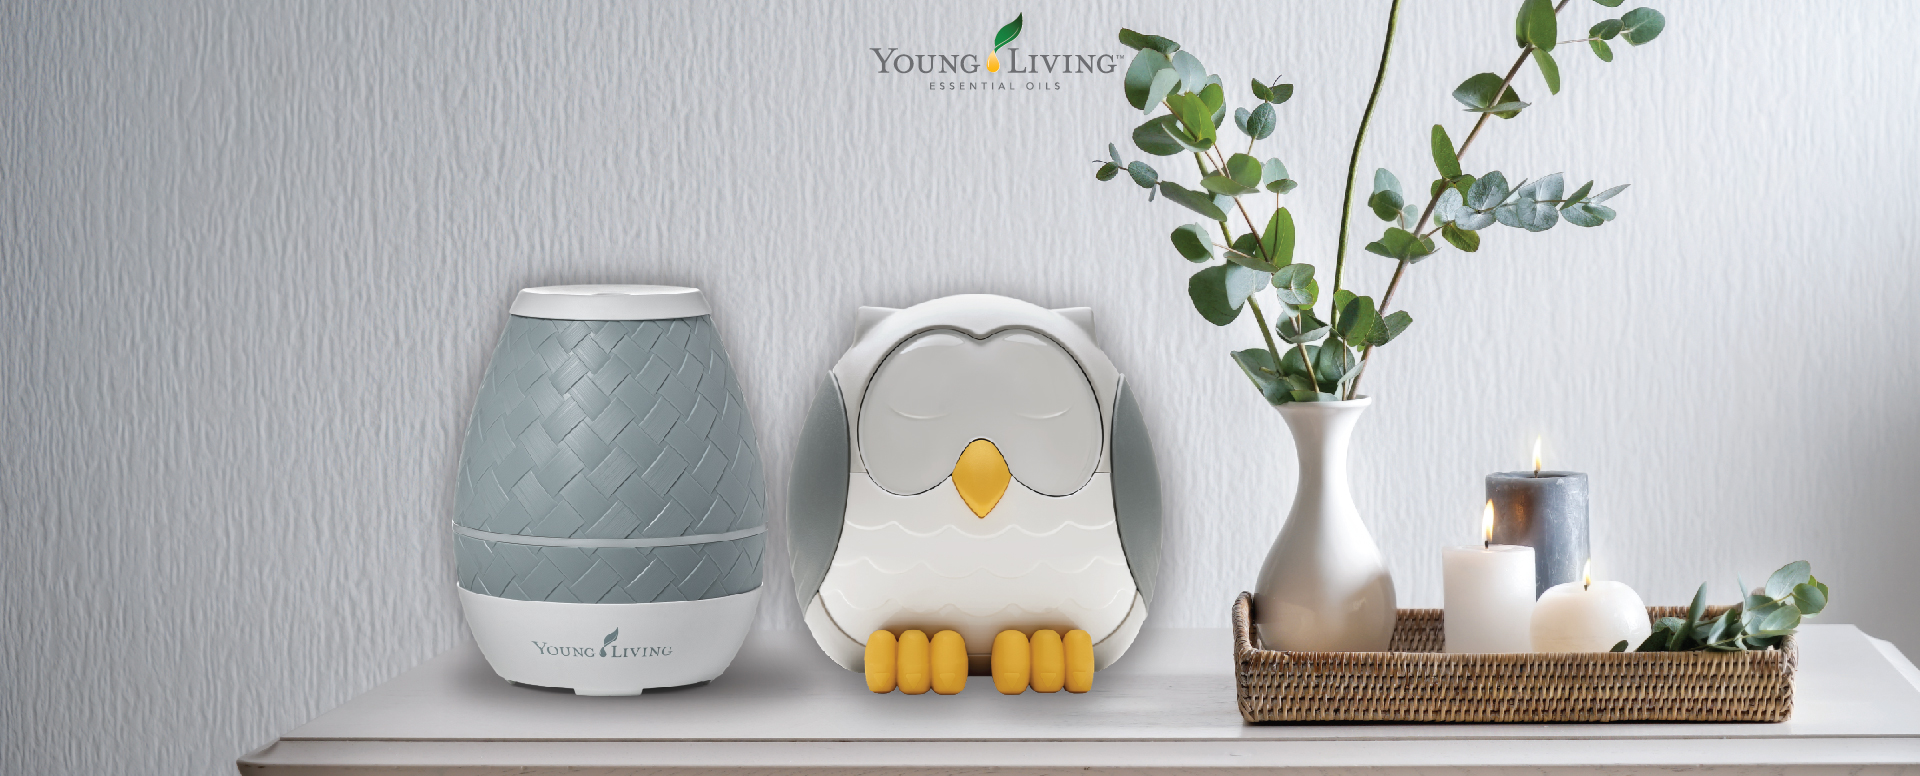 Feather Owl Diffuser Vs Sweet Aroma Diffuser Young Living Blog